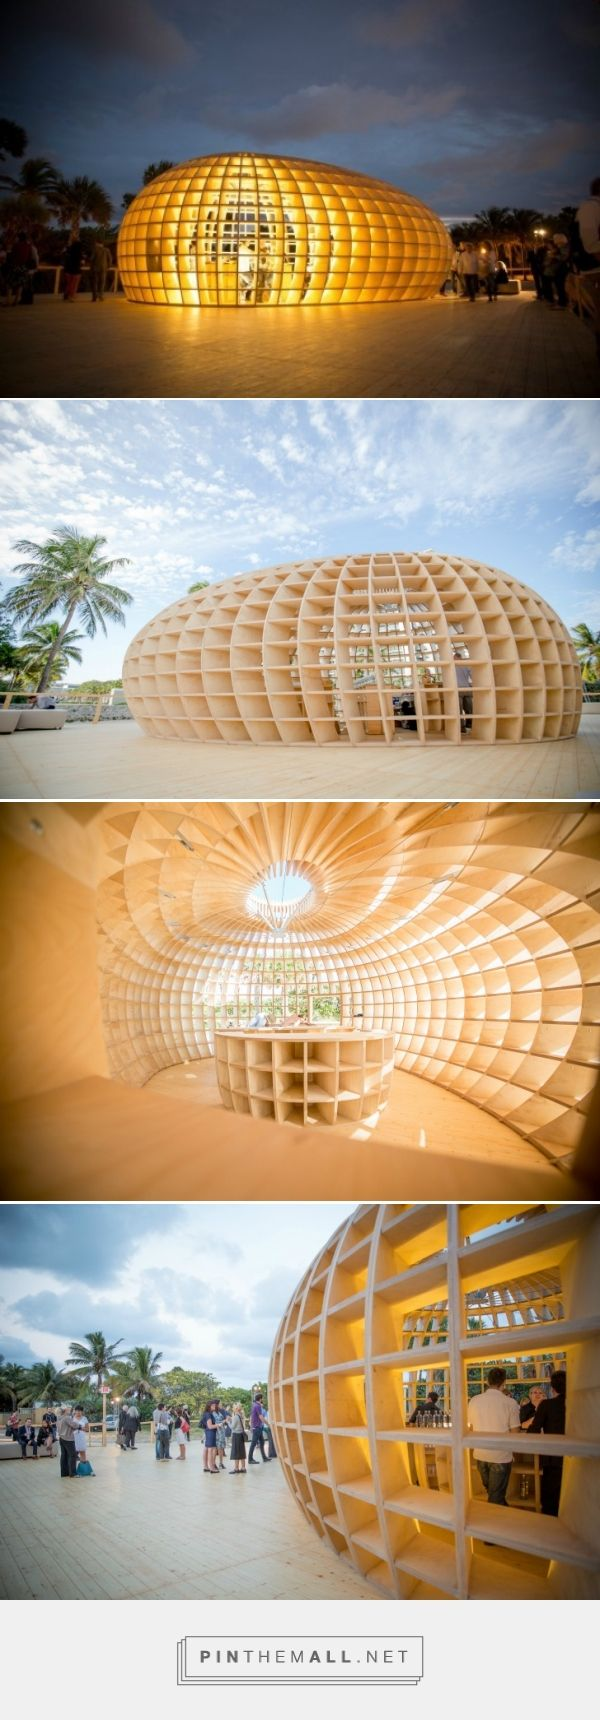 Illuminated Wooden Güiro Bar Inspired by Tropical Fruit Shell  | Inhabitat - Green Design, Innovation, Architecture, Green Building - created via https://pinthemall.net